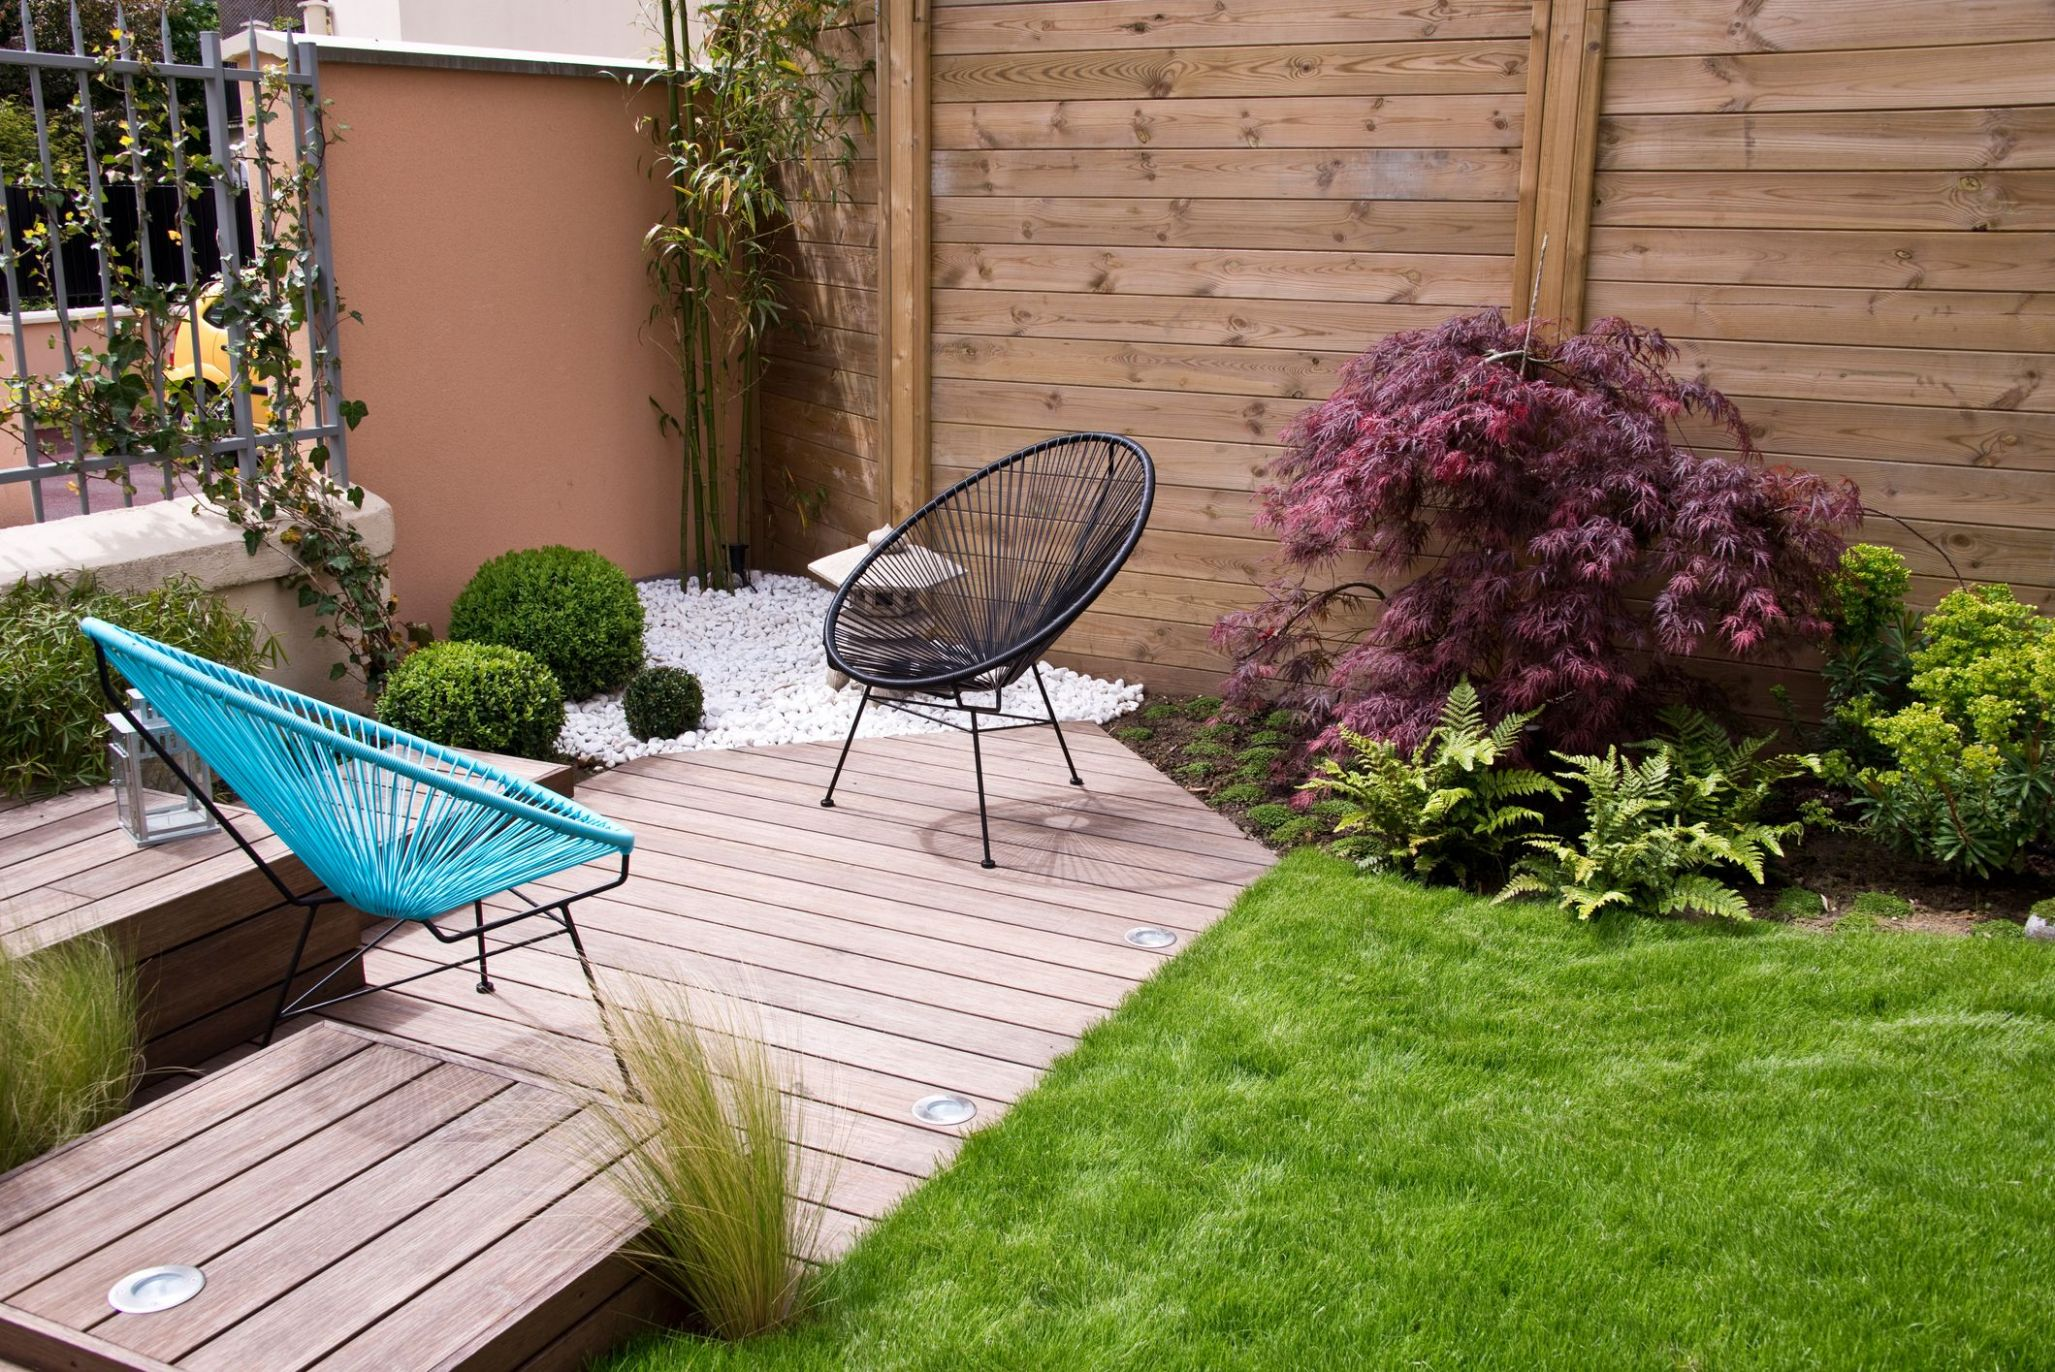 10 Small Garden Ideas On A Budget - garden ideas low cost